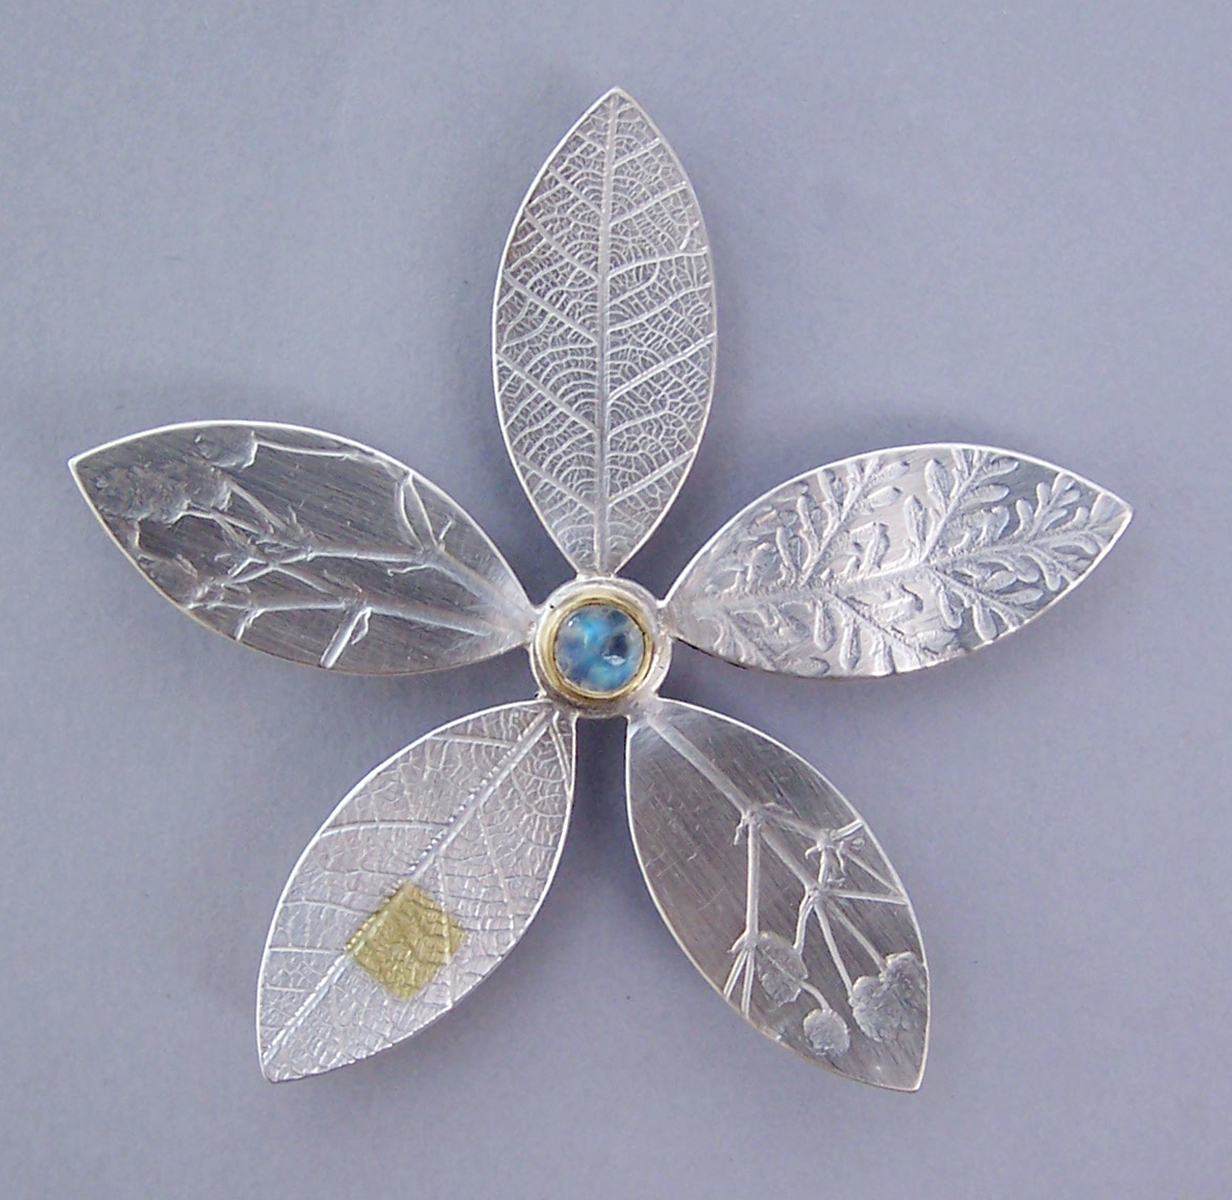 moonstone in c made maas england object collection brooch